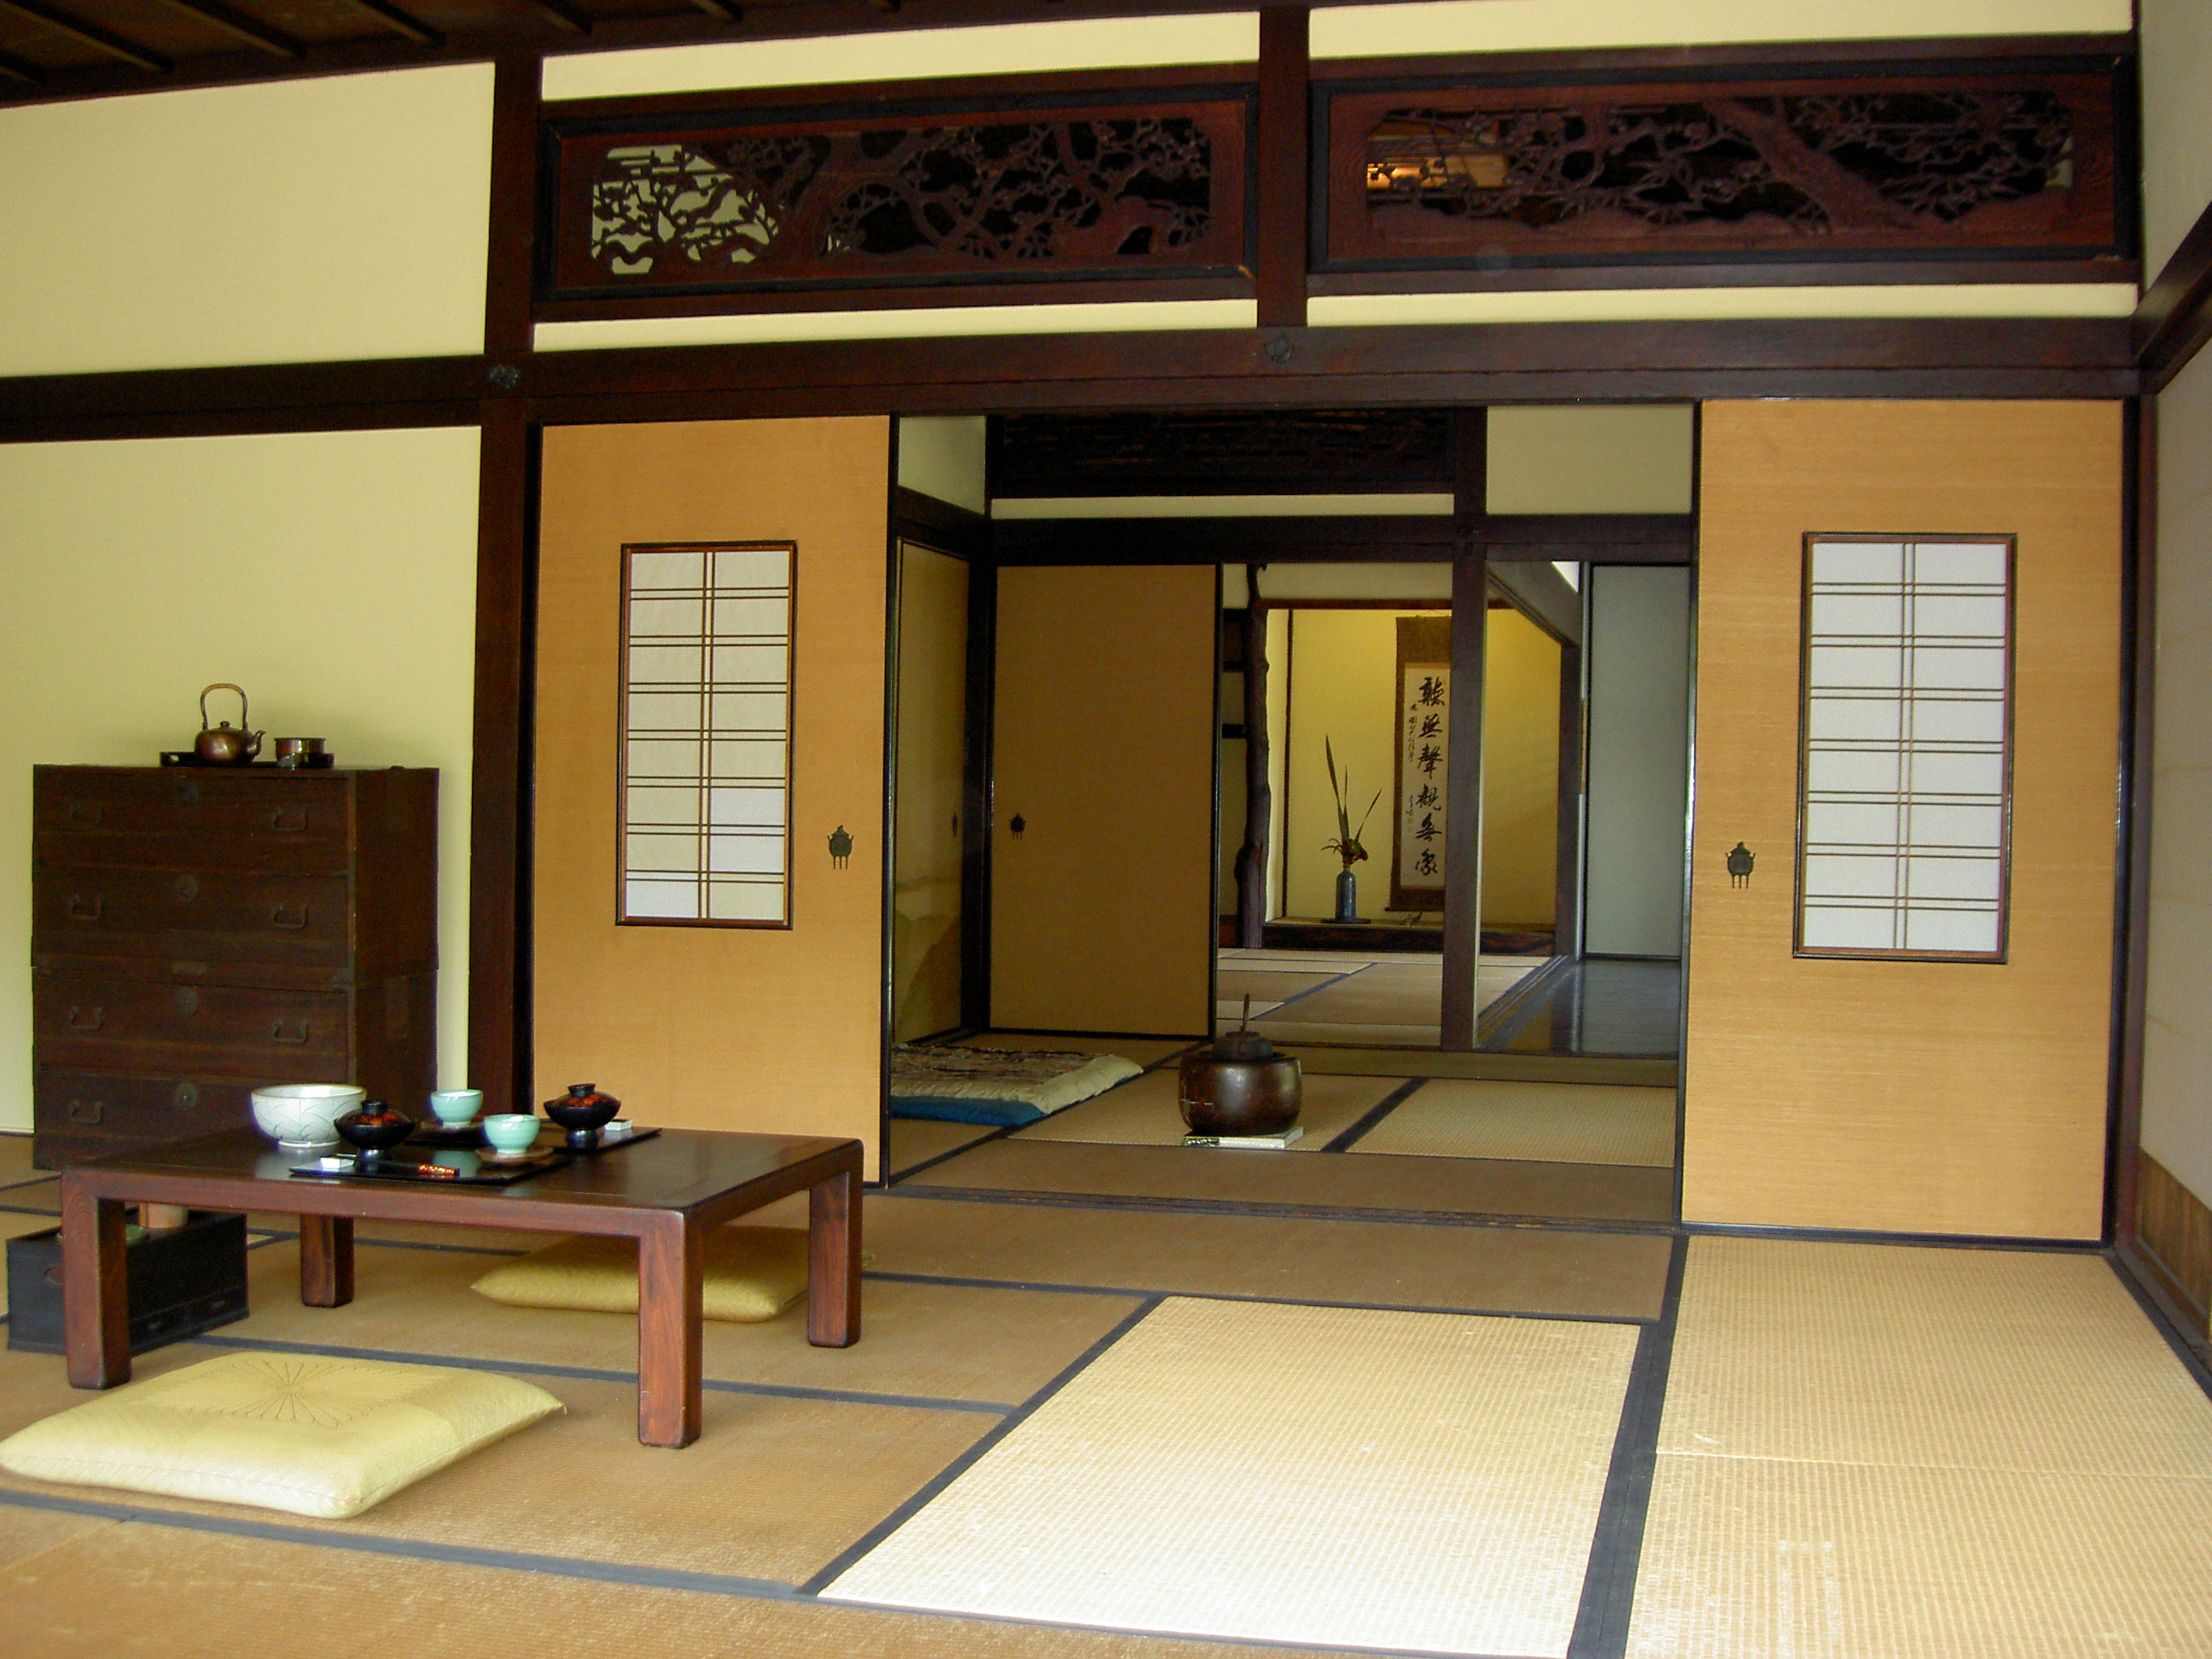 japanese style house interior photo - 7